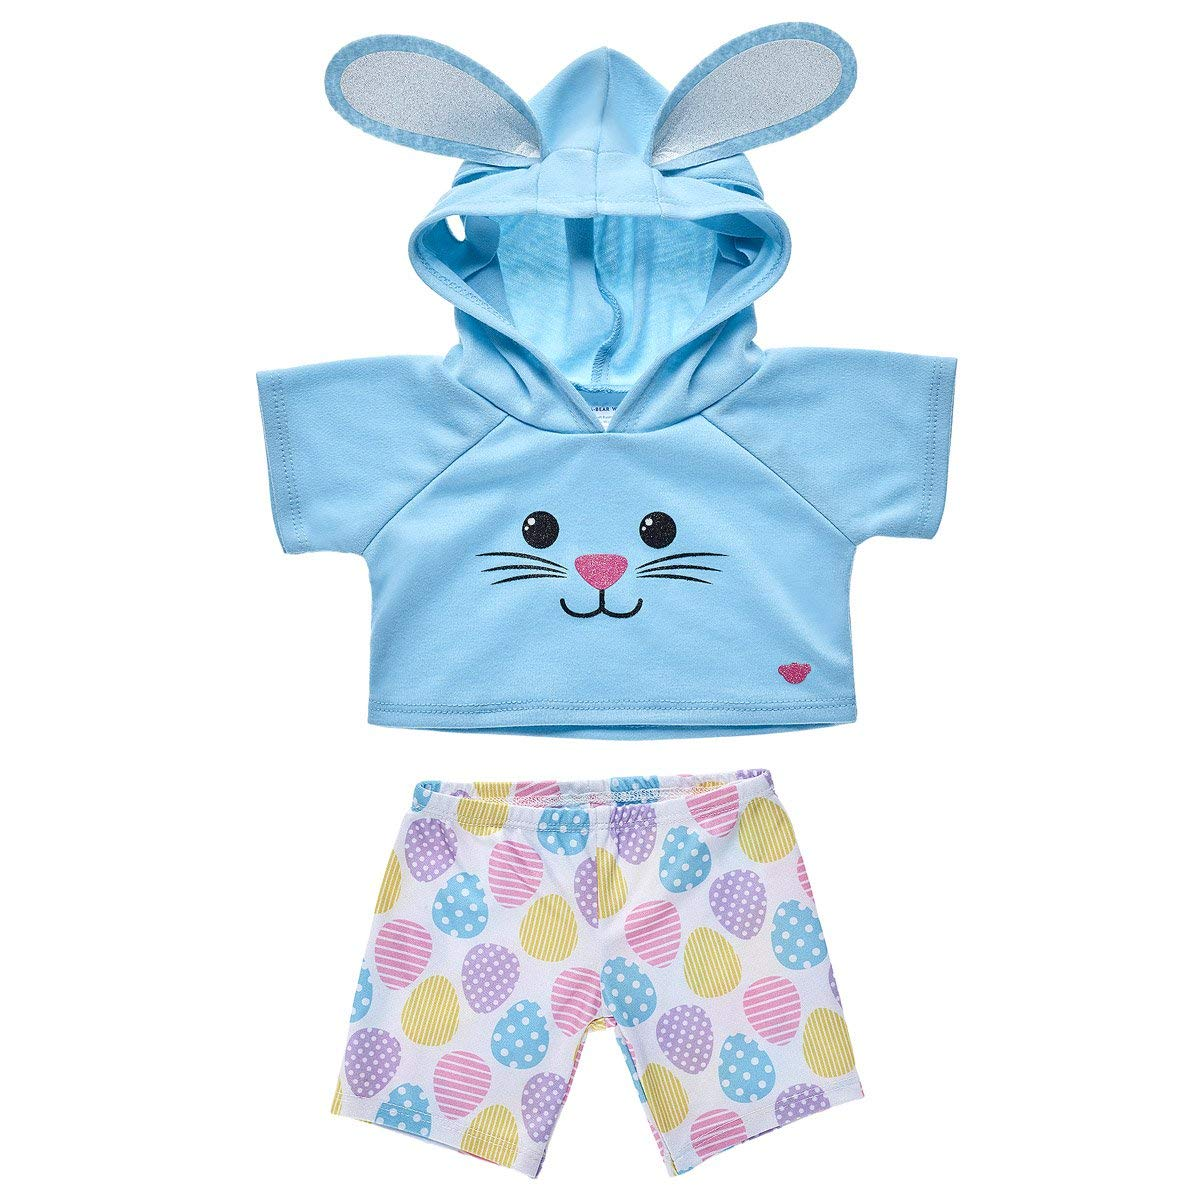 Build-a-Bear Workshop Easter Hoodie and Legging Set 2 pc.